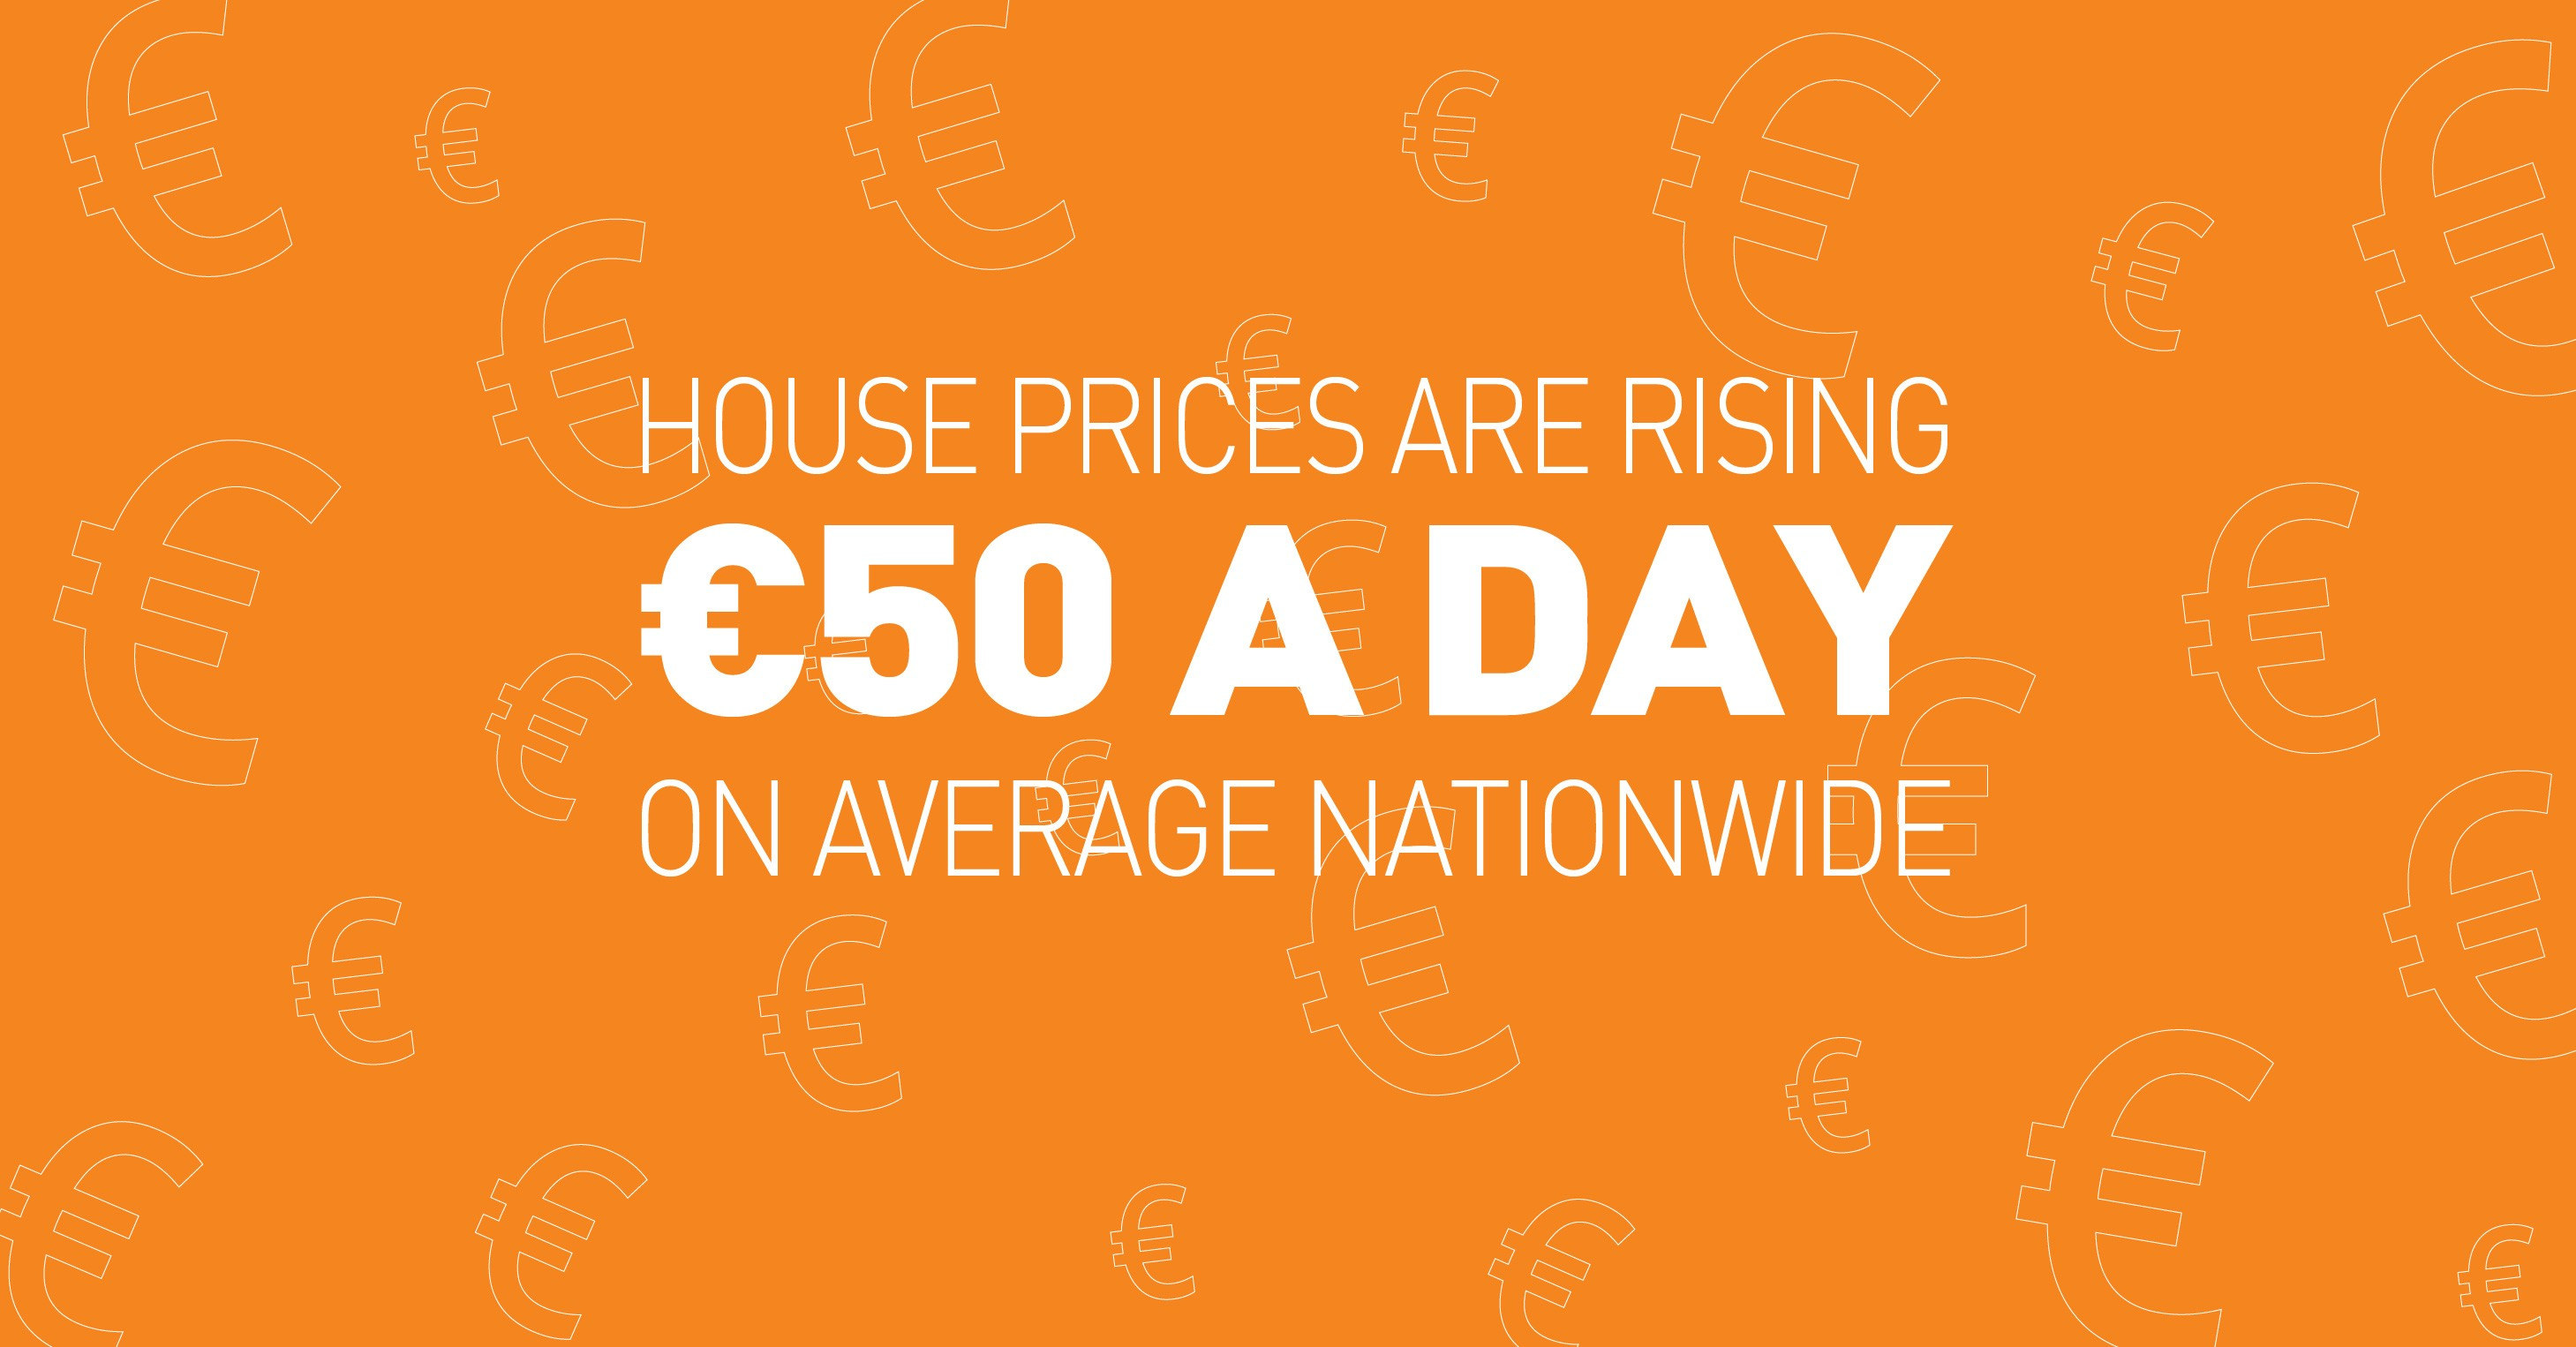 House prices are raising €50 a day on average nationwide